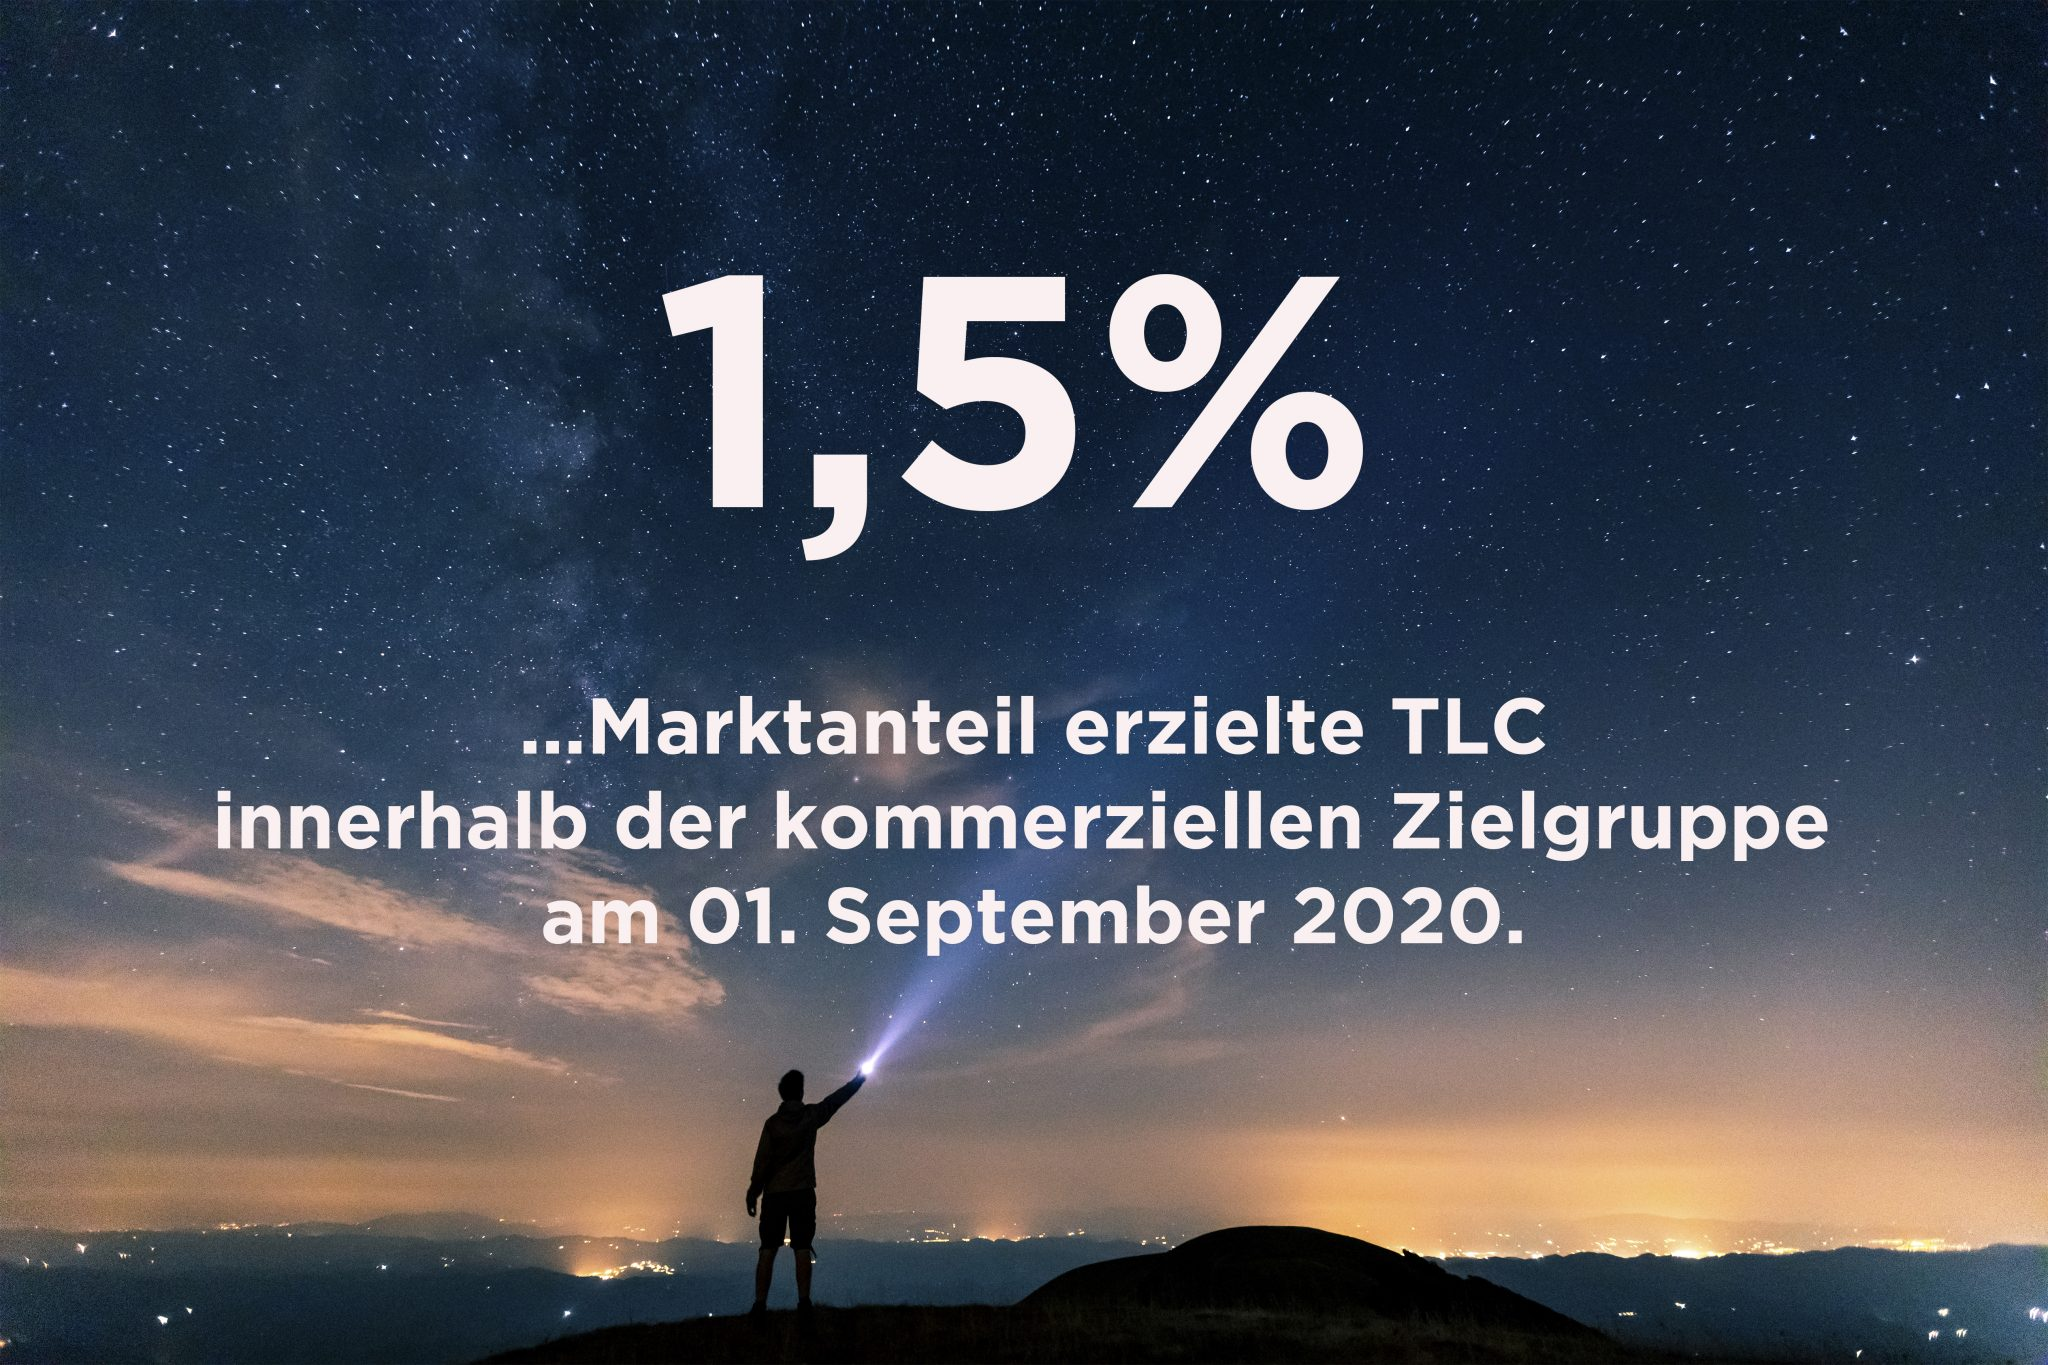 Research Zahl des Monats - Starke TLC-Performance am 01. September